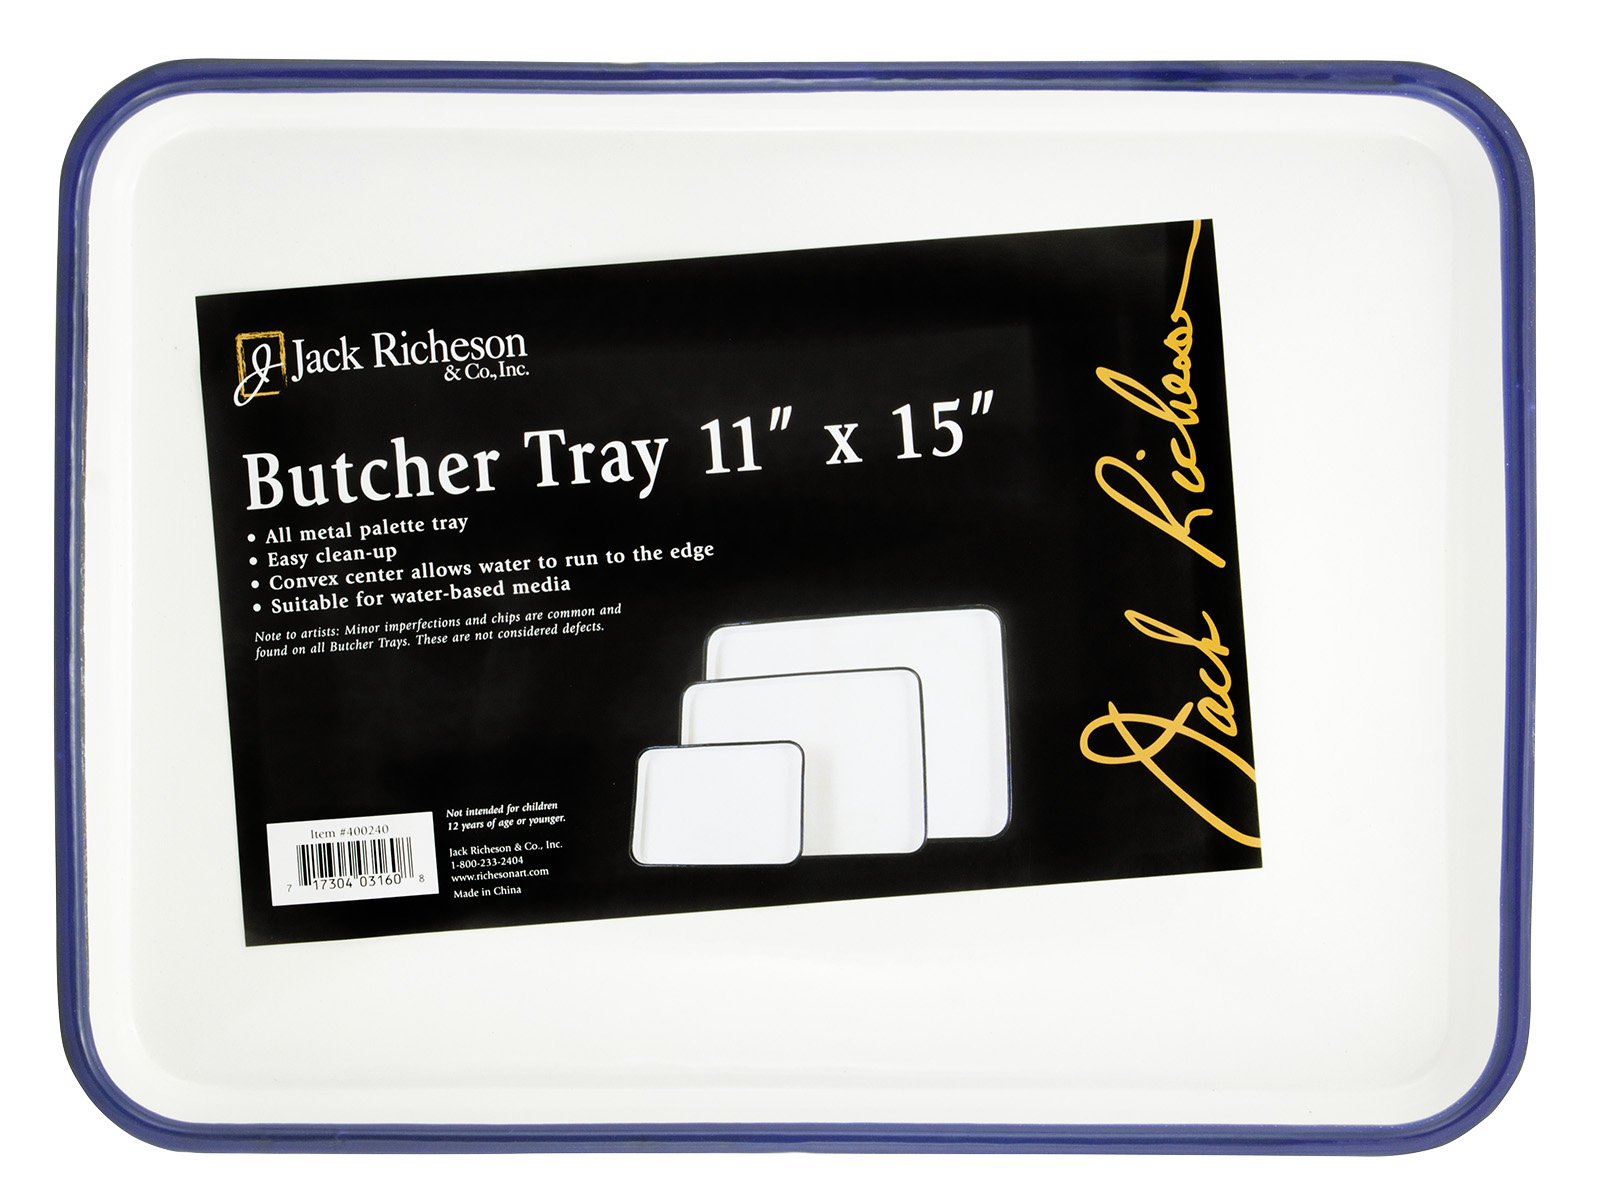 Jack Richeson Butcher Porcelain Palette Tray, 11 x 15 in, White by Jack Richeson